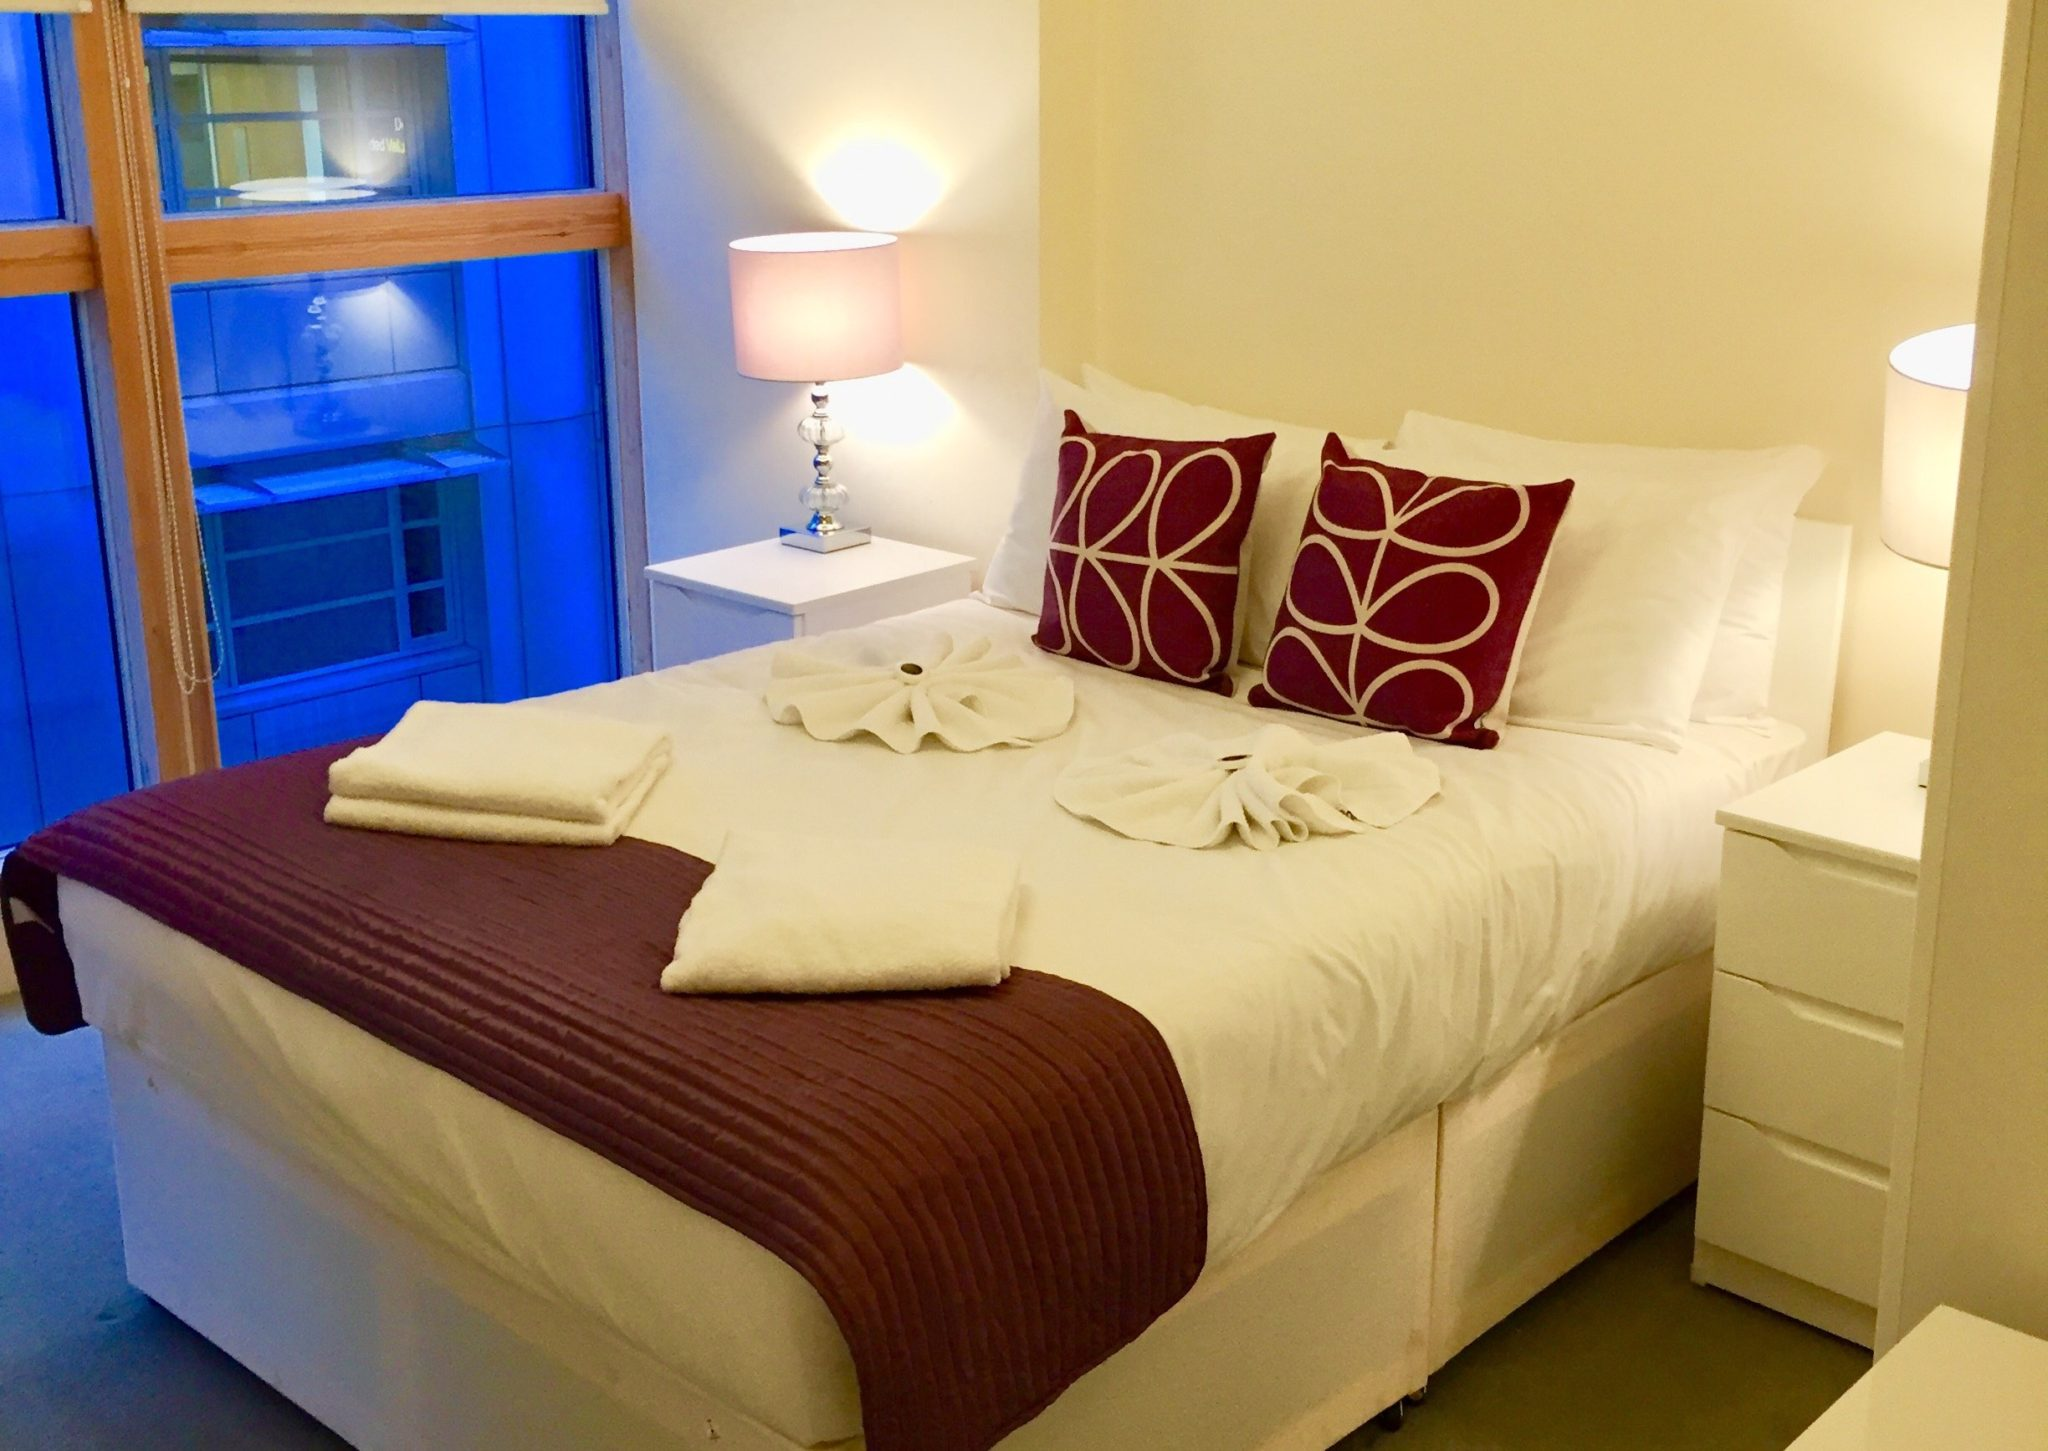 Serviced-Apartments-Central-London-|Stylish-Old-Street-Deluxe-Apartments-|-Free-Wifi-|-Fully-Equipped-Kitchen-|-Private-Balcony-|0208-6913920|-Urban-Stay